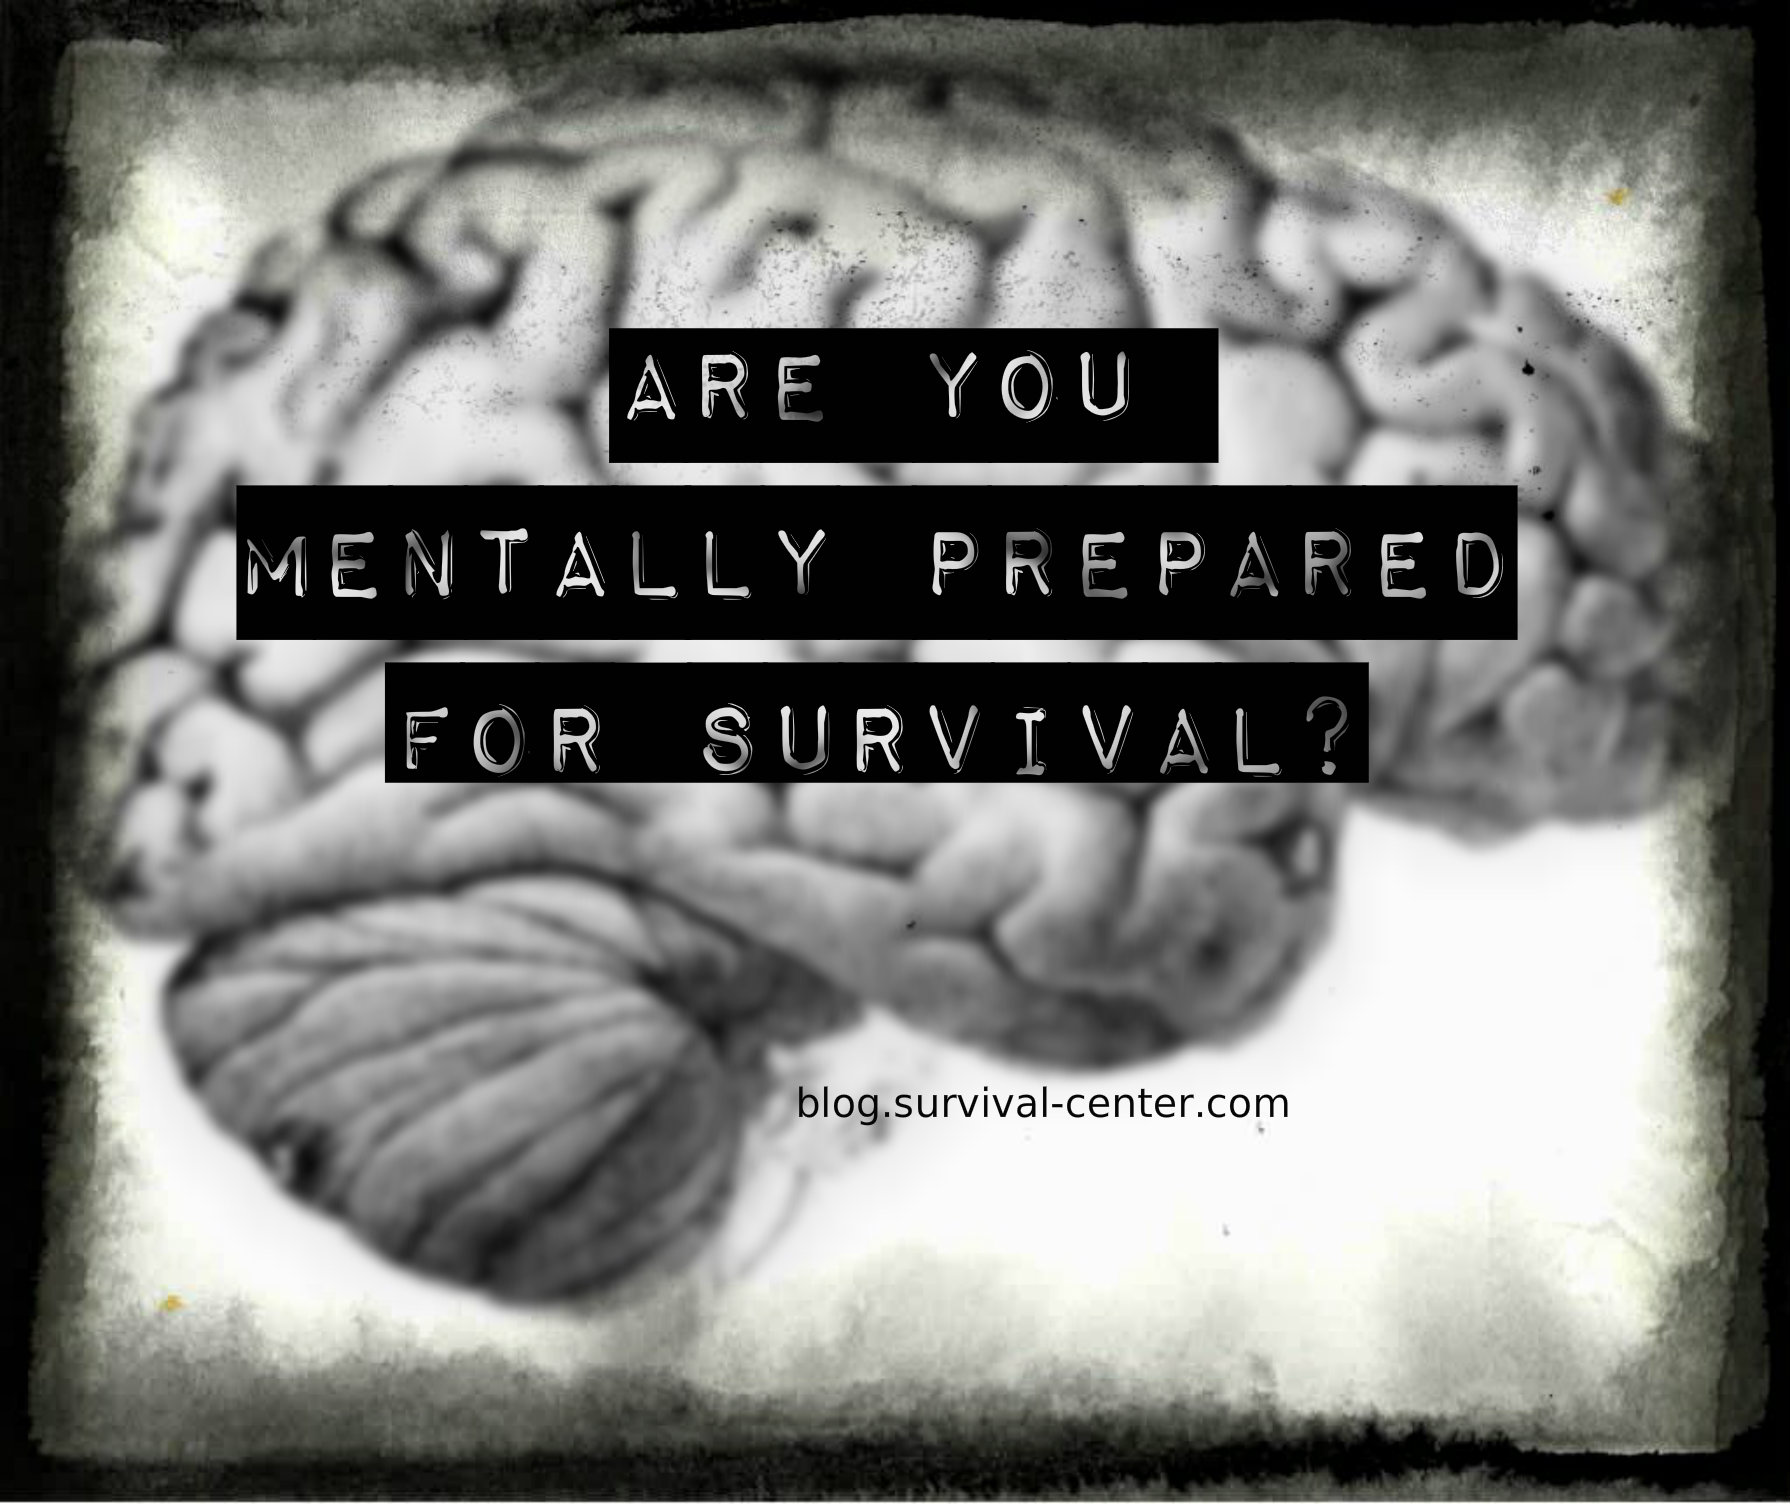 <h1>Do You Have a Survival Mindset?</h1>